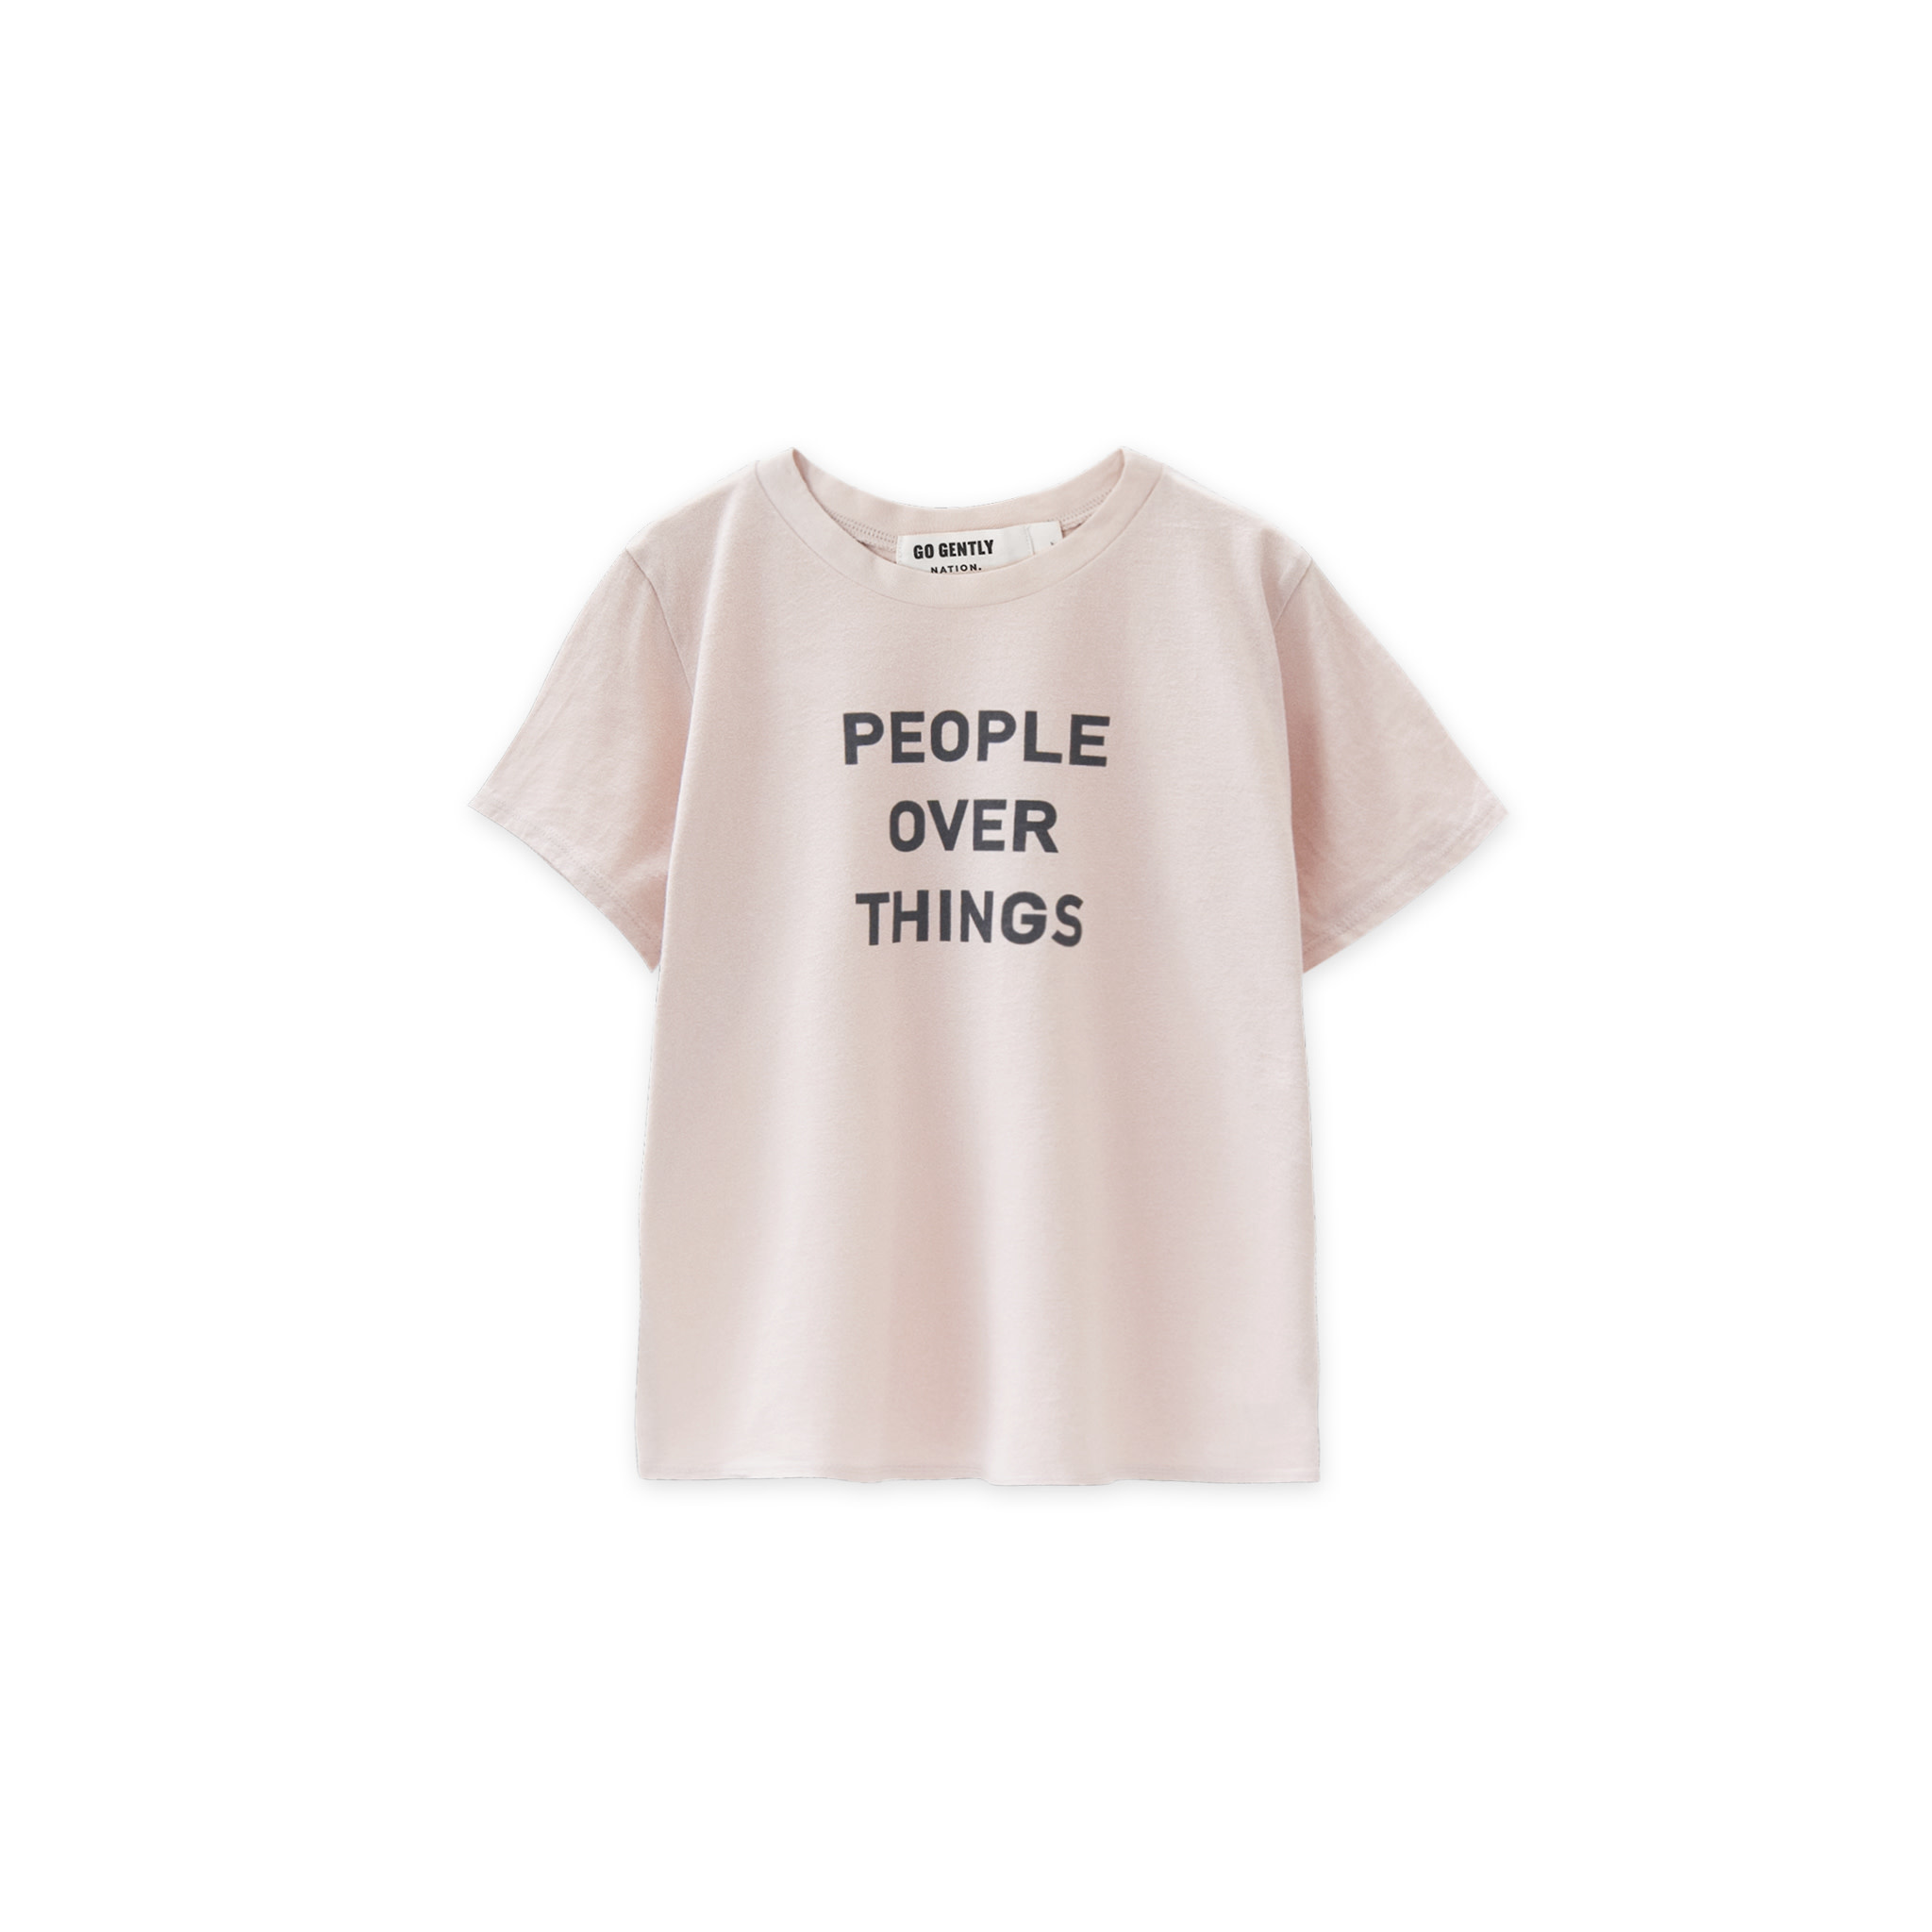 GOGENTLYNATION People Over Things Tee